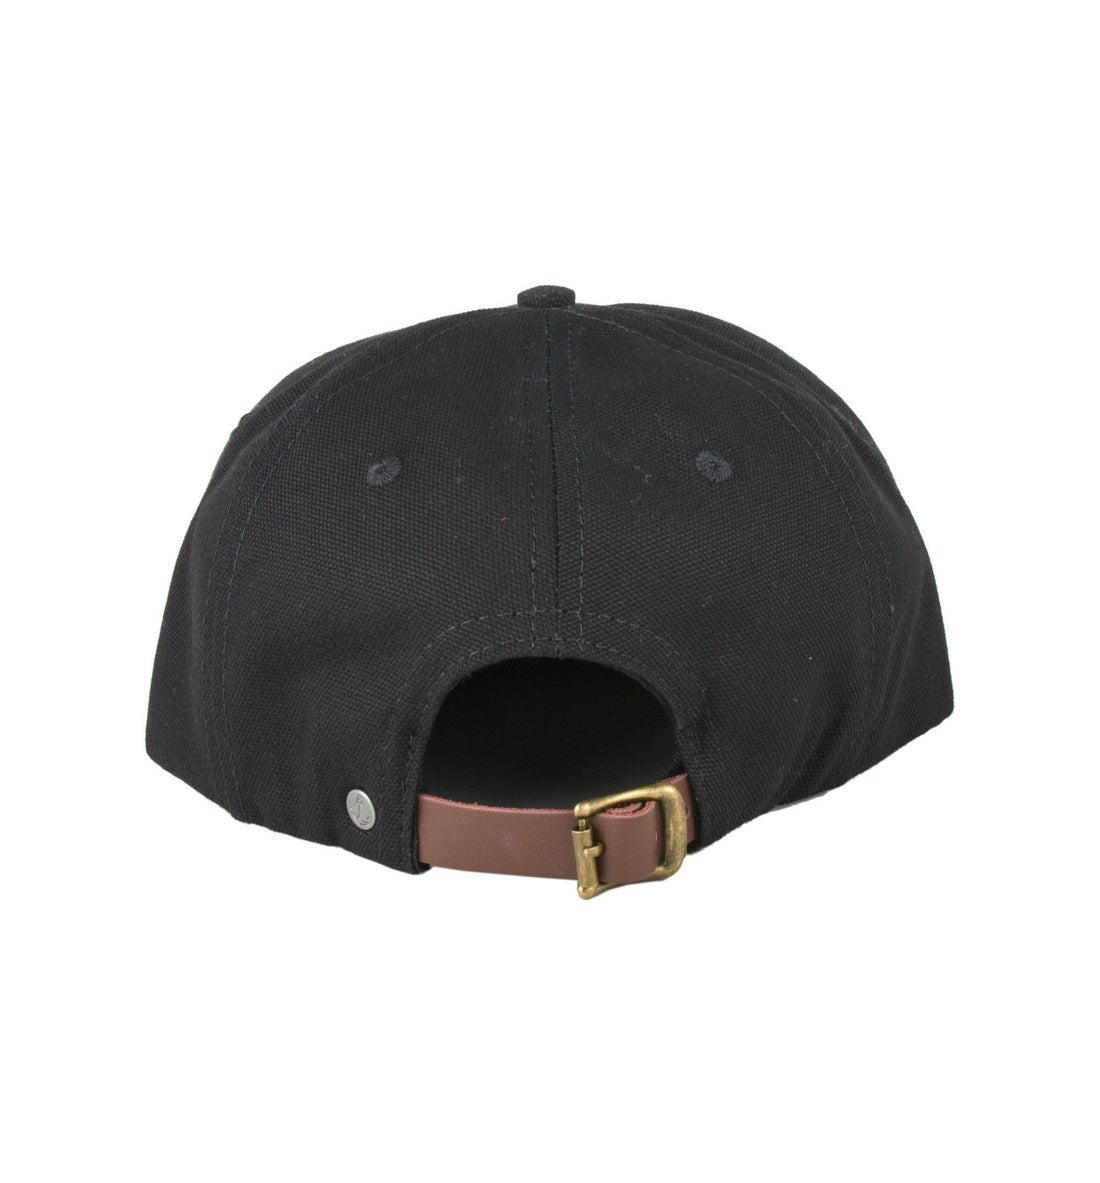 Del Norte Hat - Headwear - Iron and Resin